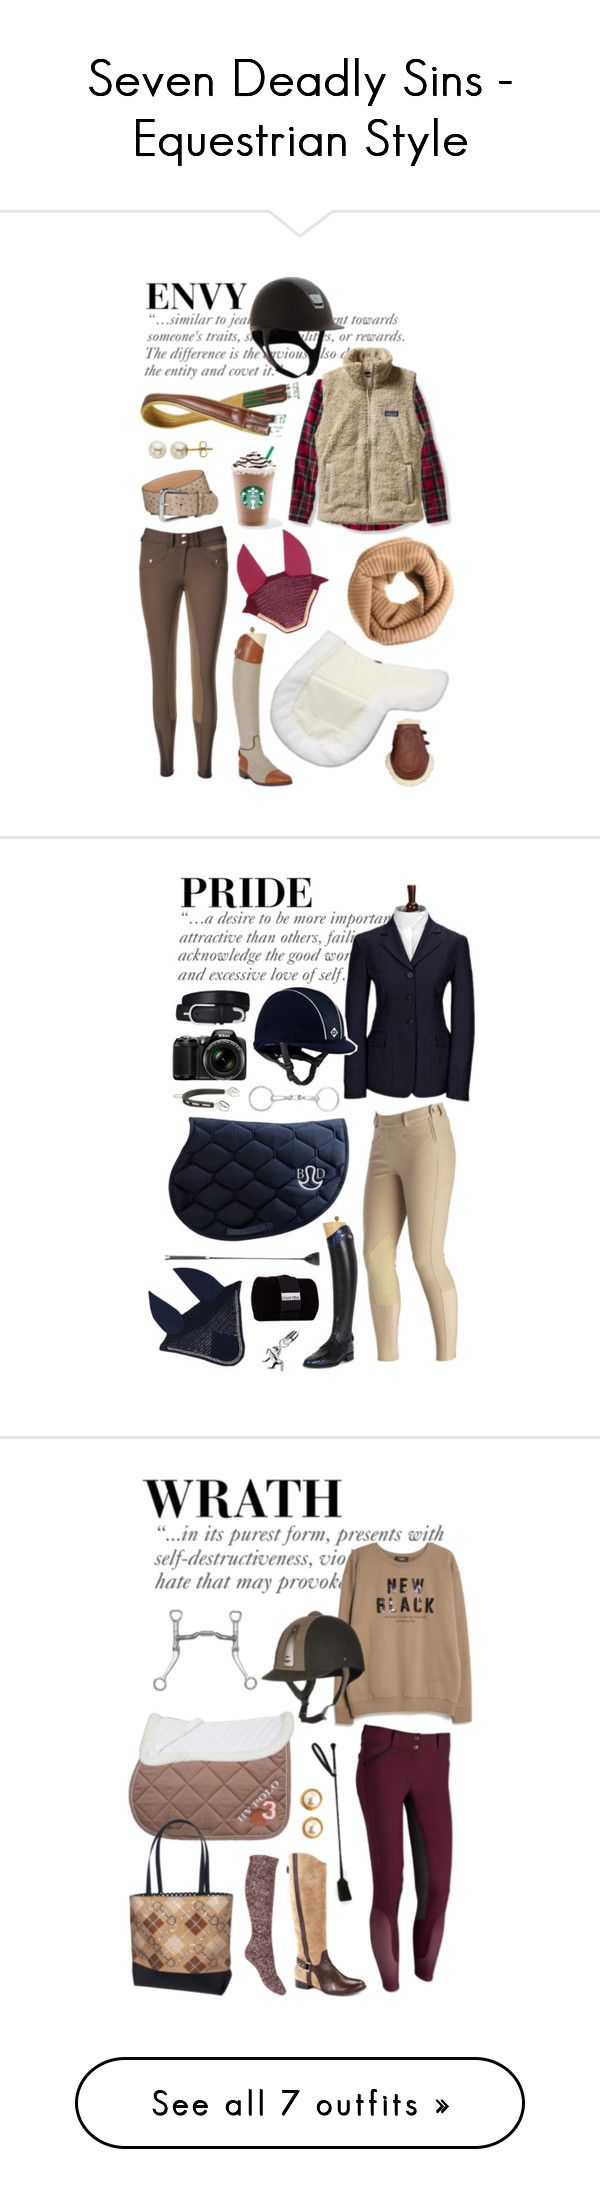 """""""Seven Deadly Sins - Equestrian Style"""" by equine-couture ❤ liked on Polyvore featuring Patagonia, Lord & Taylor, J.Crew, Ariat, Nikon, MANGO, Louise et Cie, Kate Spade, Forever 21 and Diane Von Furstenberg"""